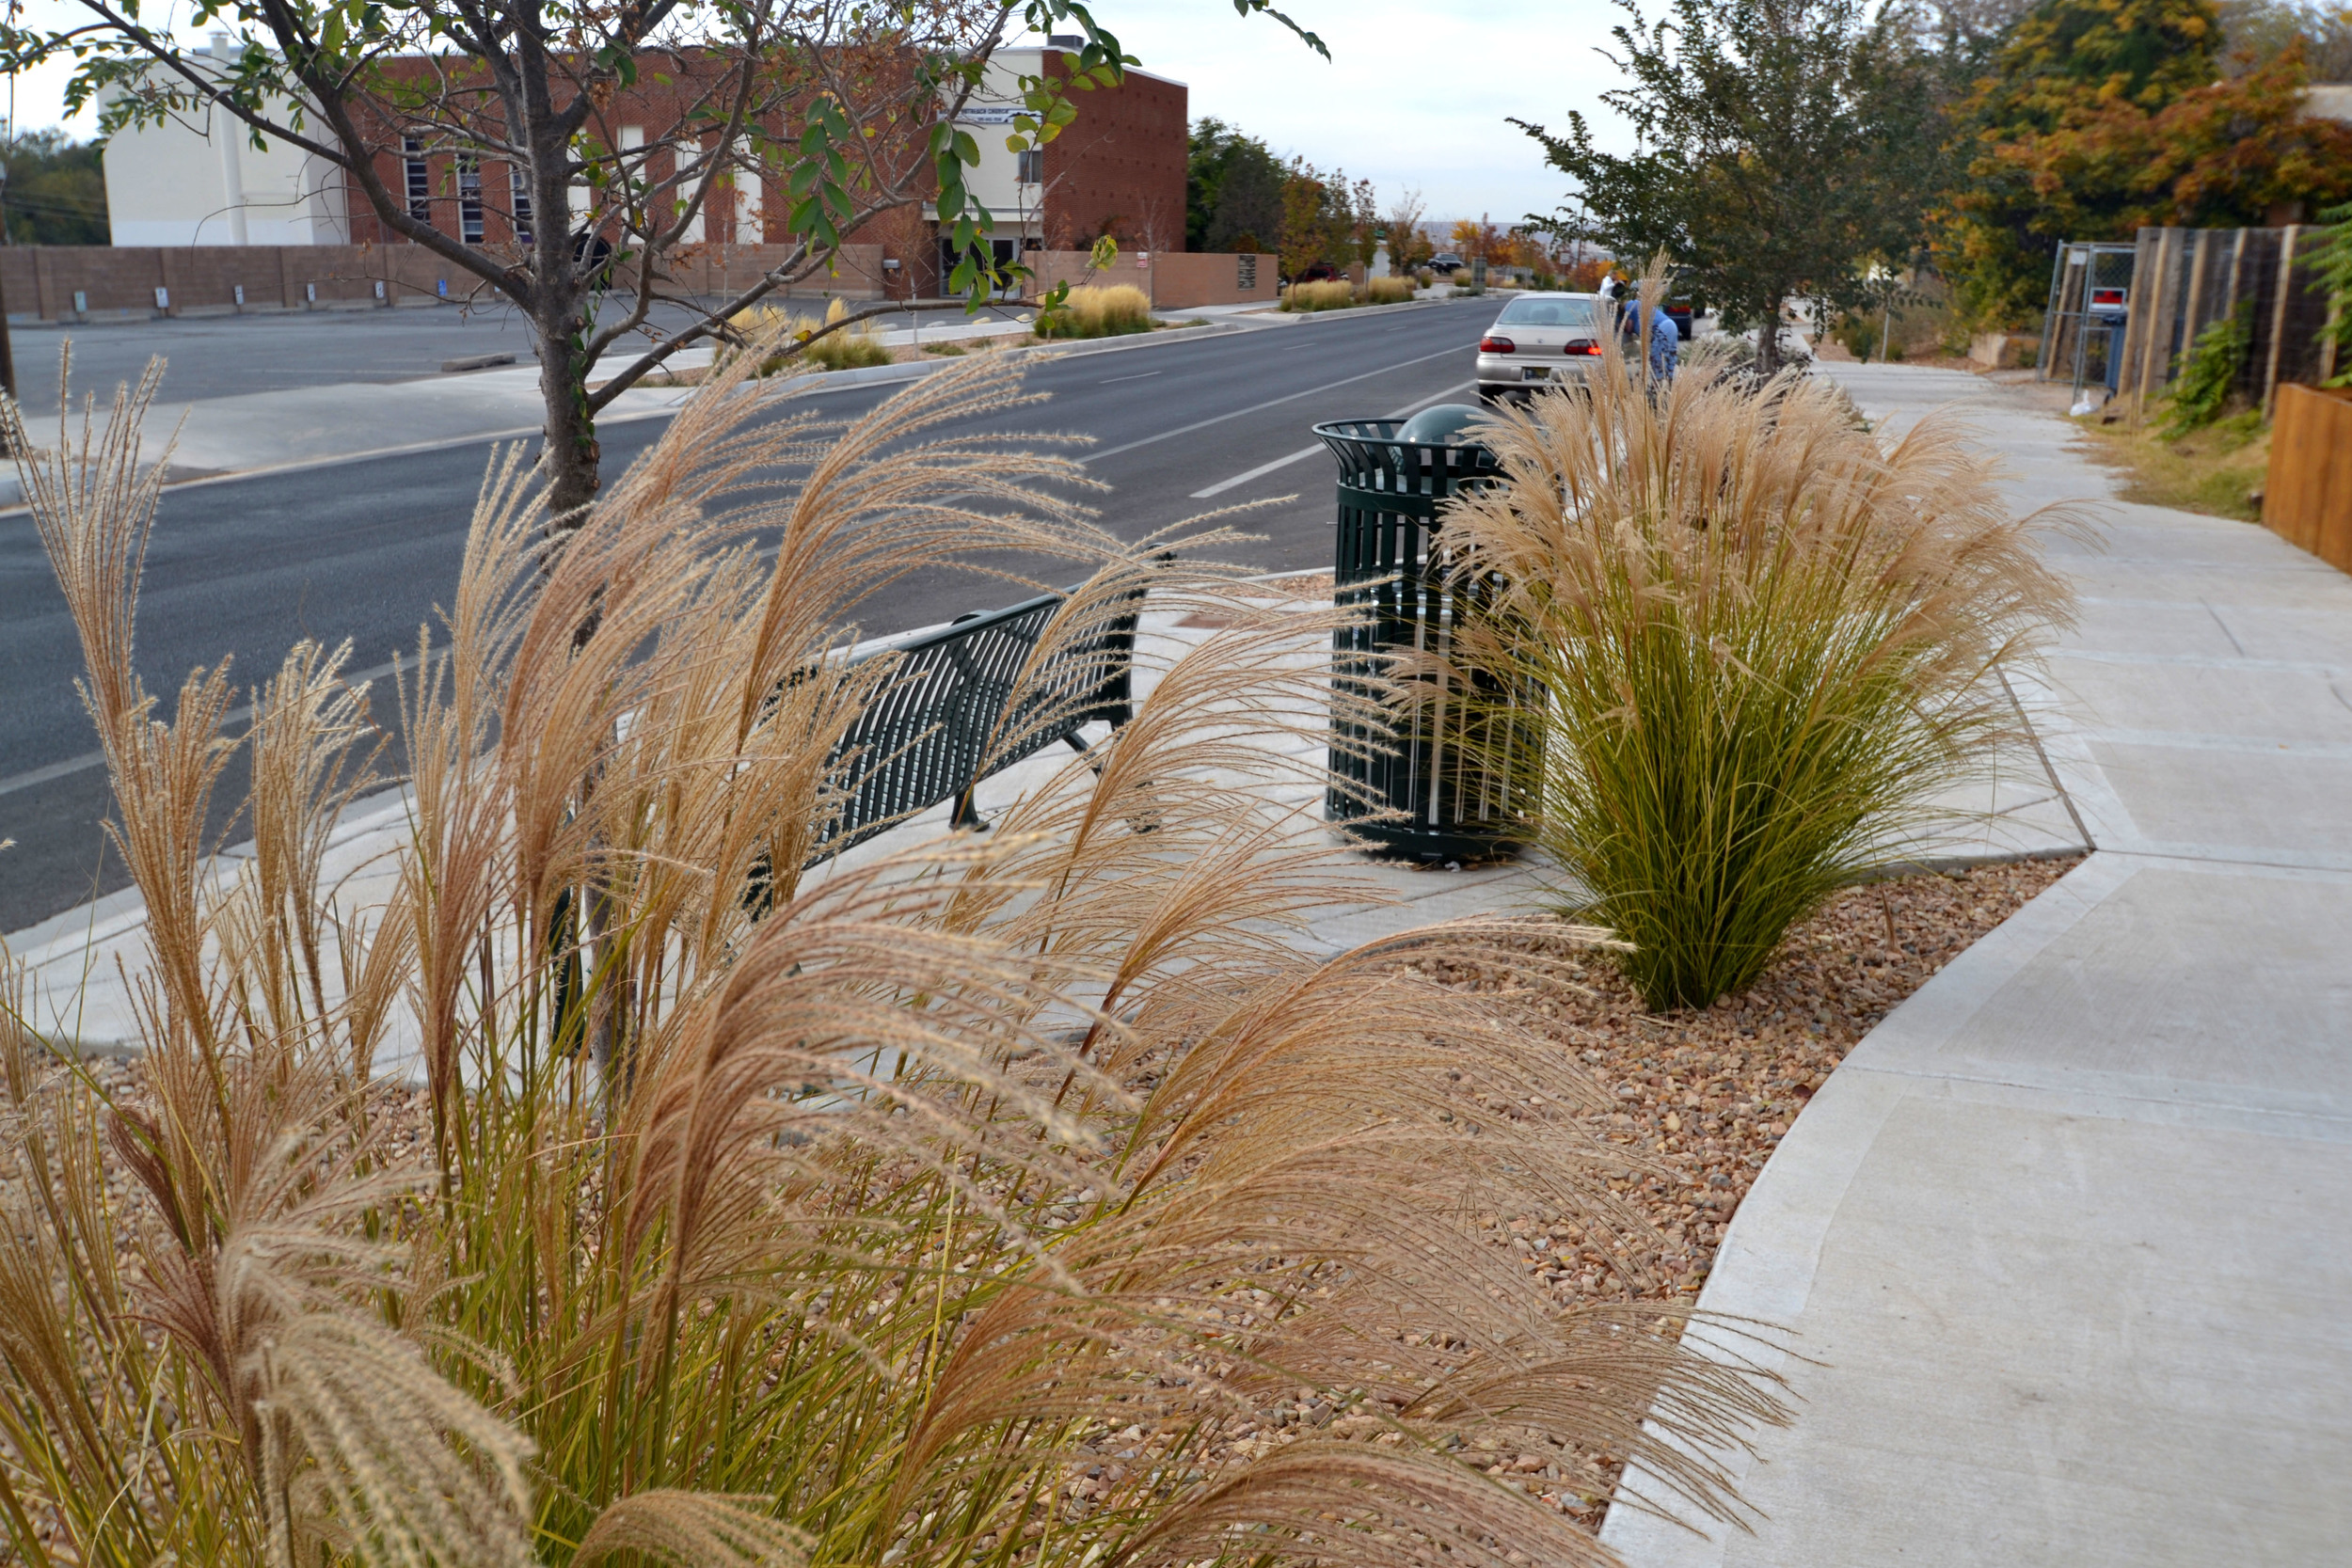 Ornamental grasses add scale and movement to streetscape